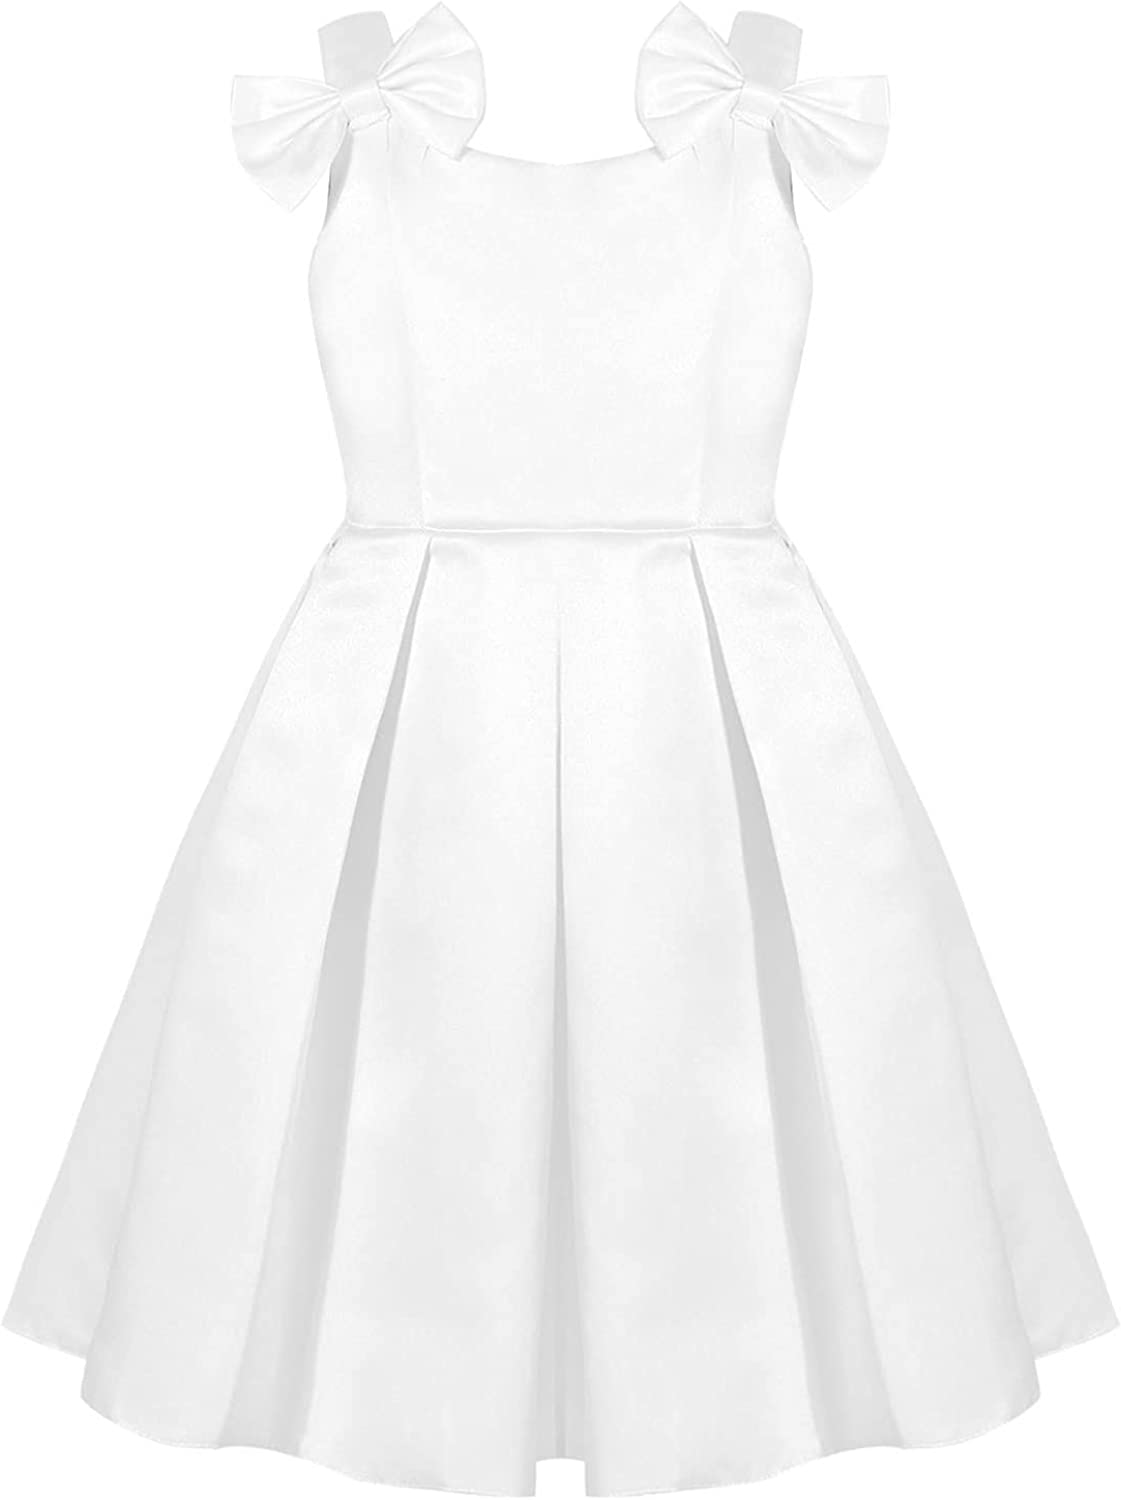 CHICTRY Girls Satin Princess Dress Bowknot Sleeveless Pleated Pageant Wedding Party Dresses